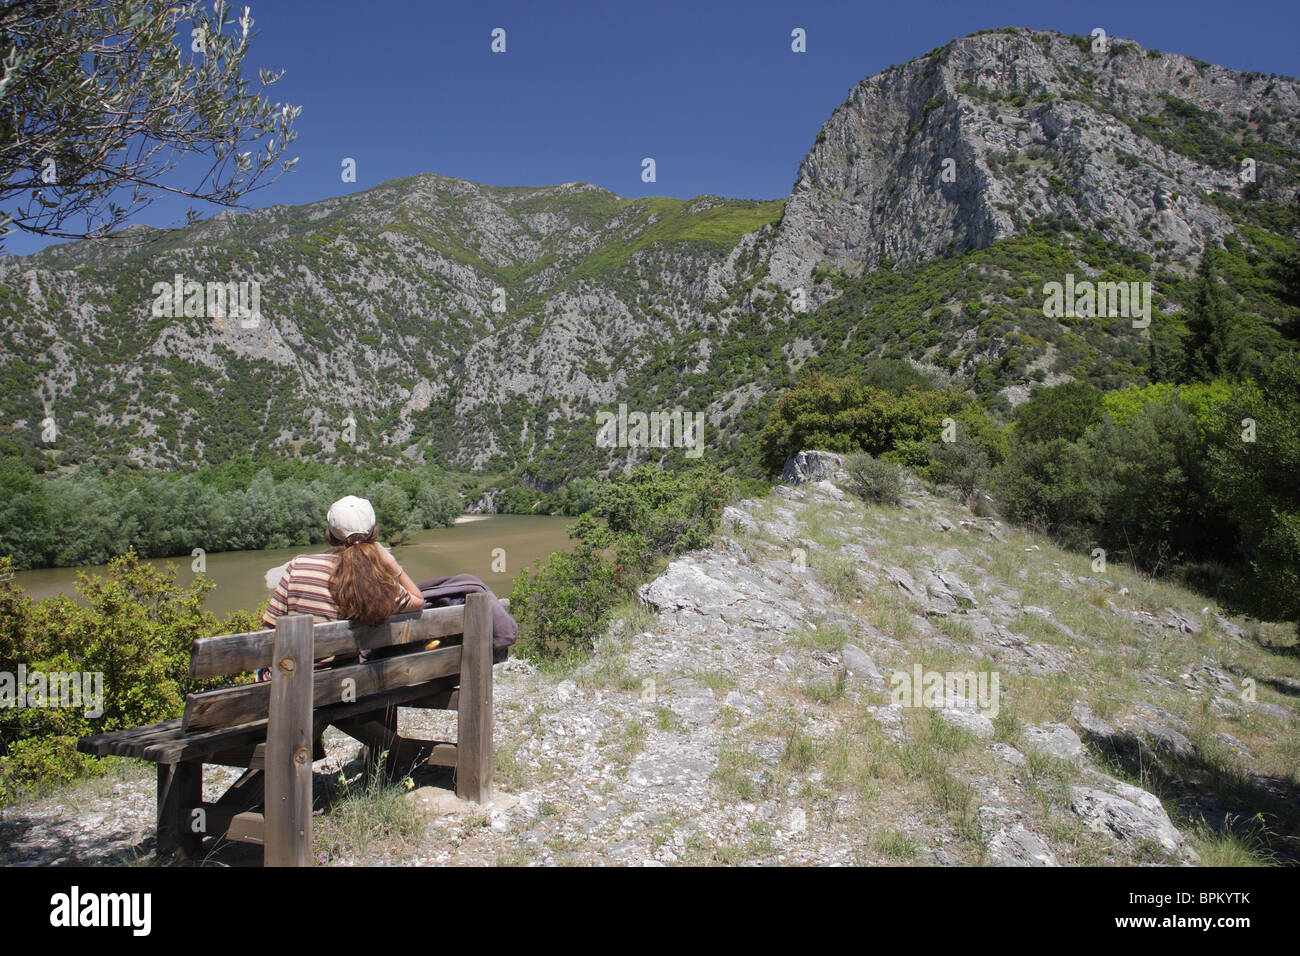 Nestos river, protected area 'Meanders of Nestos river', North Greece - Stock Image